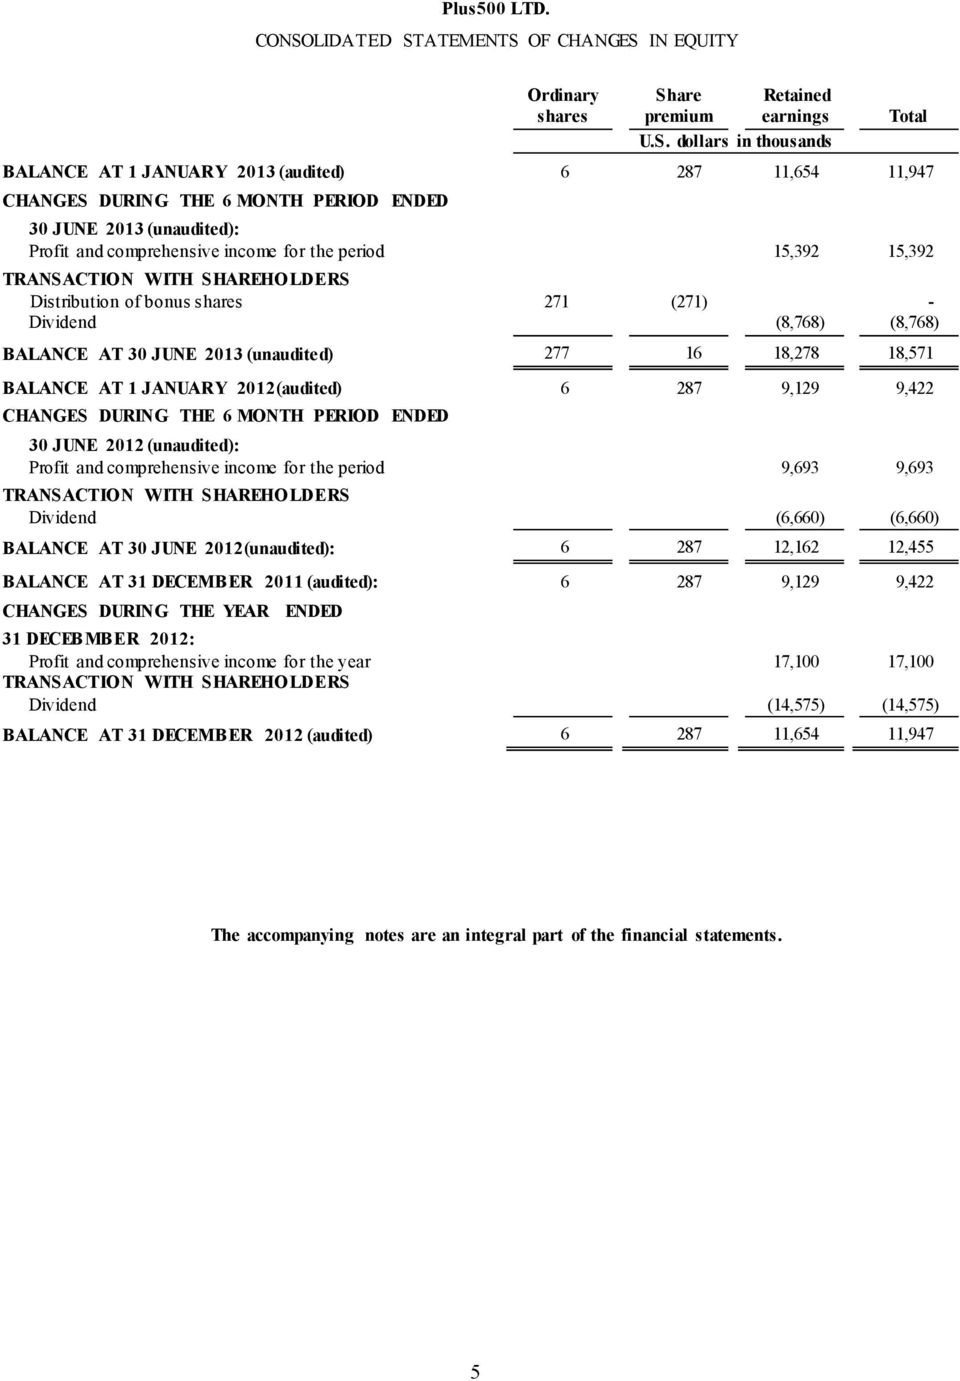 2013 (unaudited) 277 16 18,278 18,571 BALANCE AT 1 JANUARY 2012(audited) 6 287 9,129 9,422 CHANGES DURING THE 6 MONTH PERIOD ENDED 30 JUNE 2012 (unaudited): Profit and comprehensive income for the